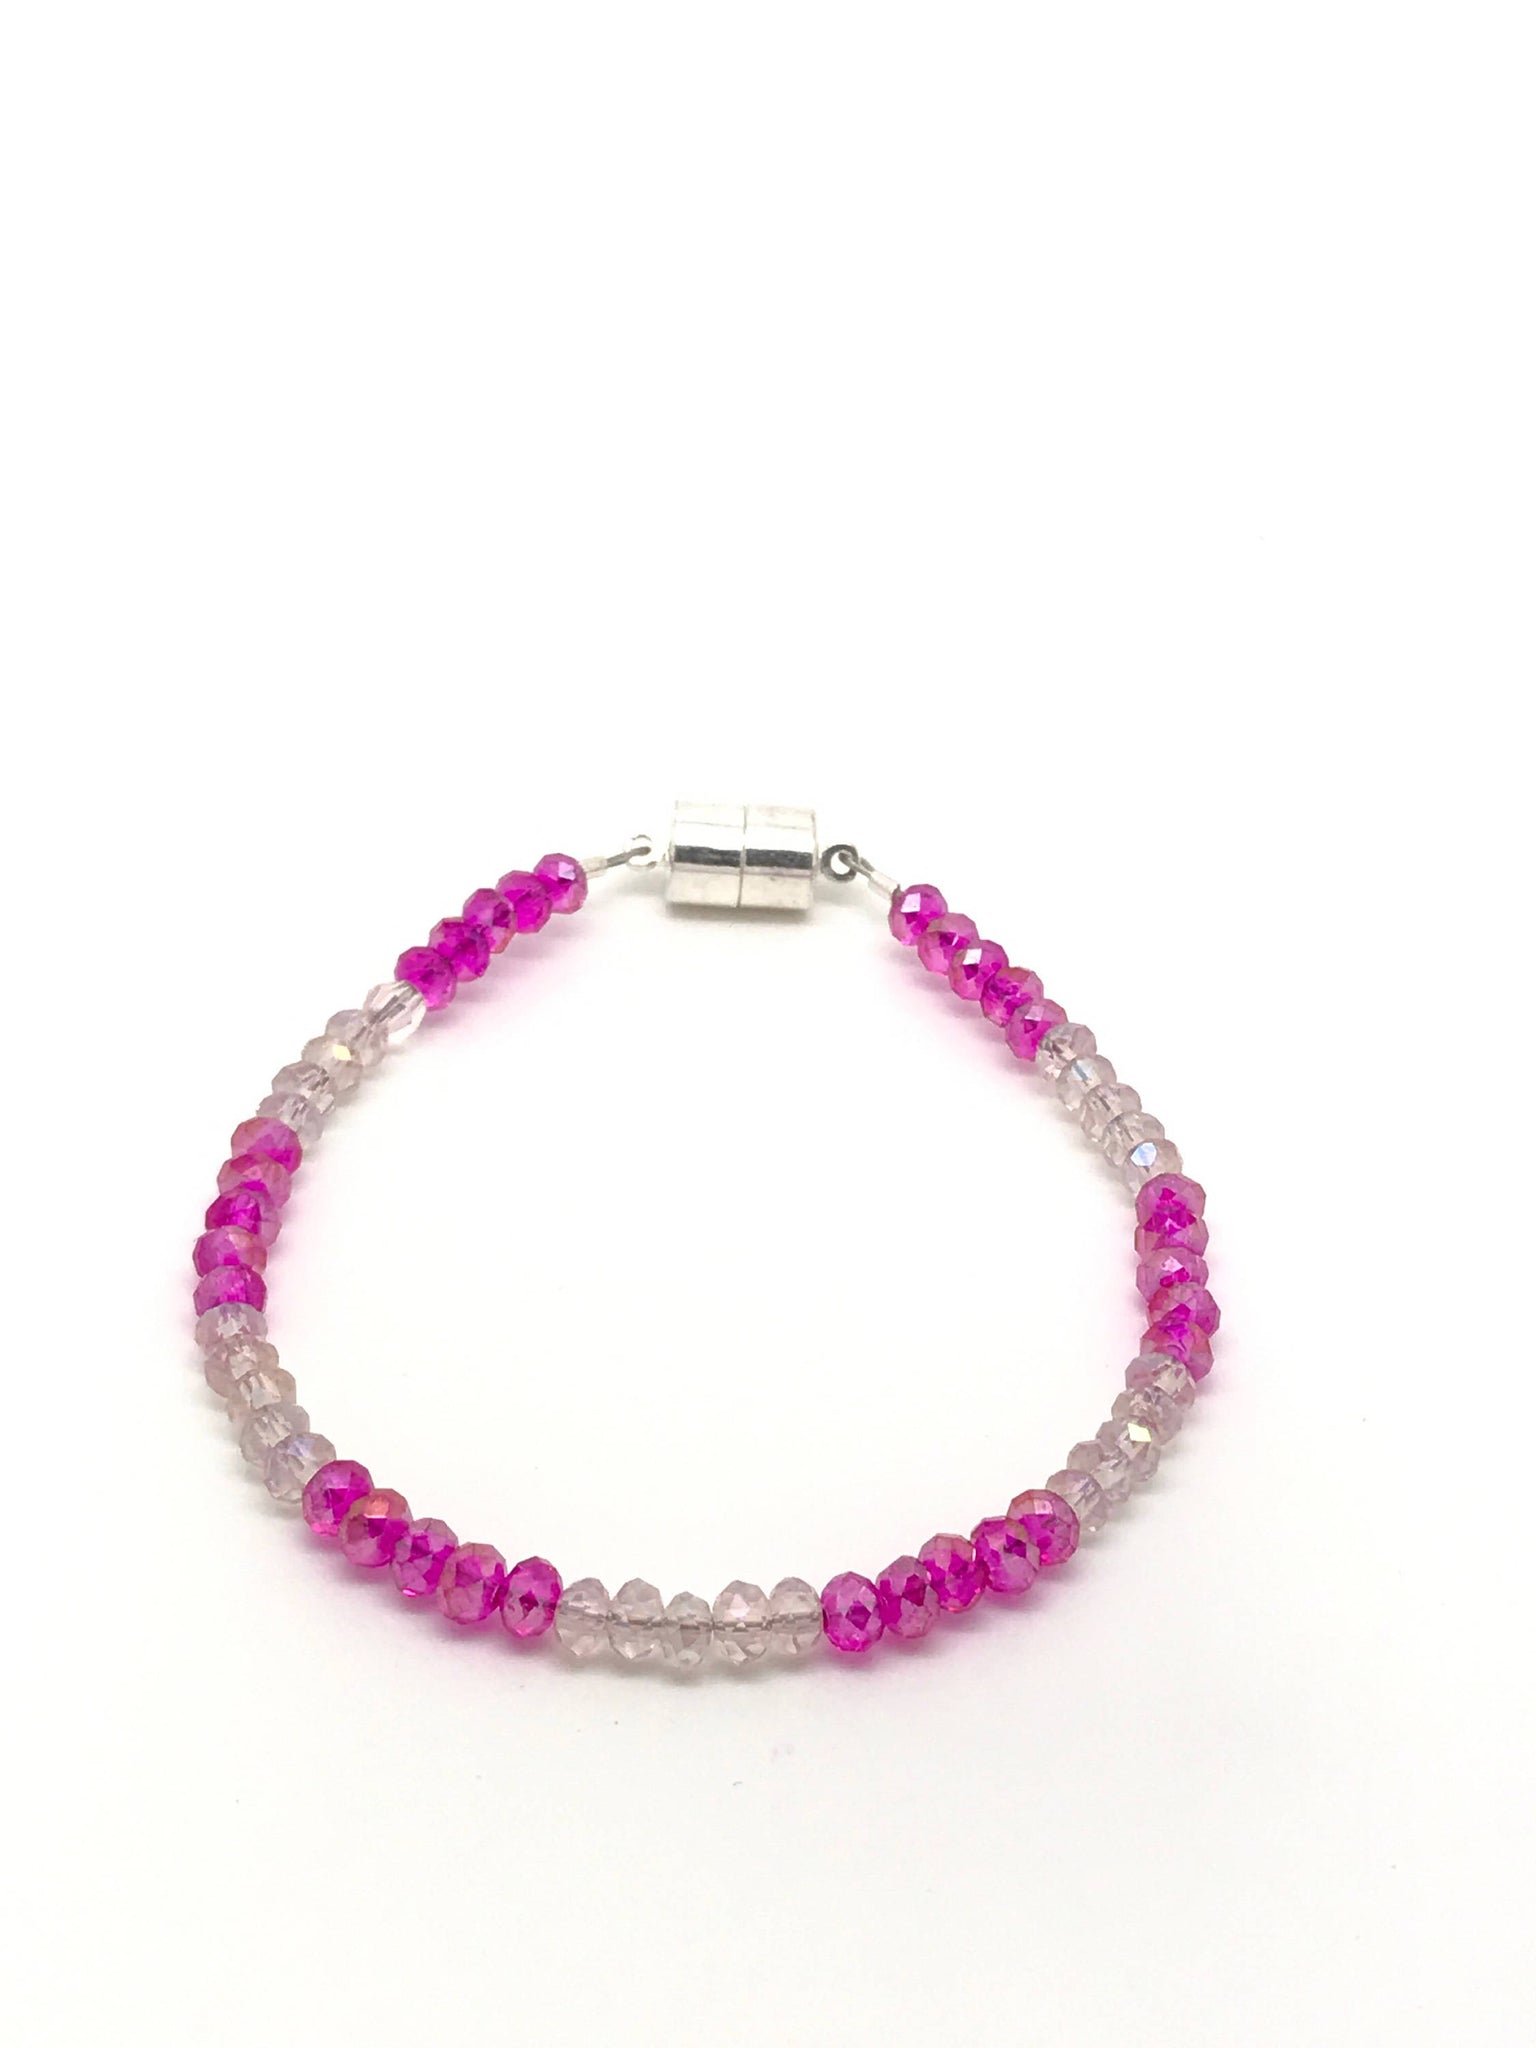 Pink crystal bracelet, pink jewelry, light pink crystal bracelet, light pink bracelet - Luzjewelrydesign